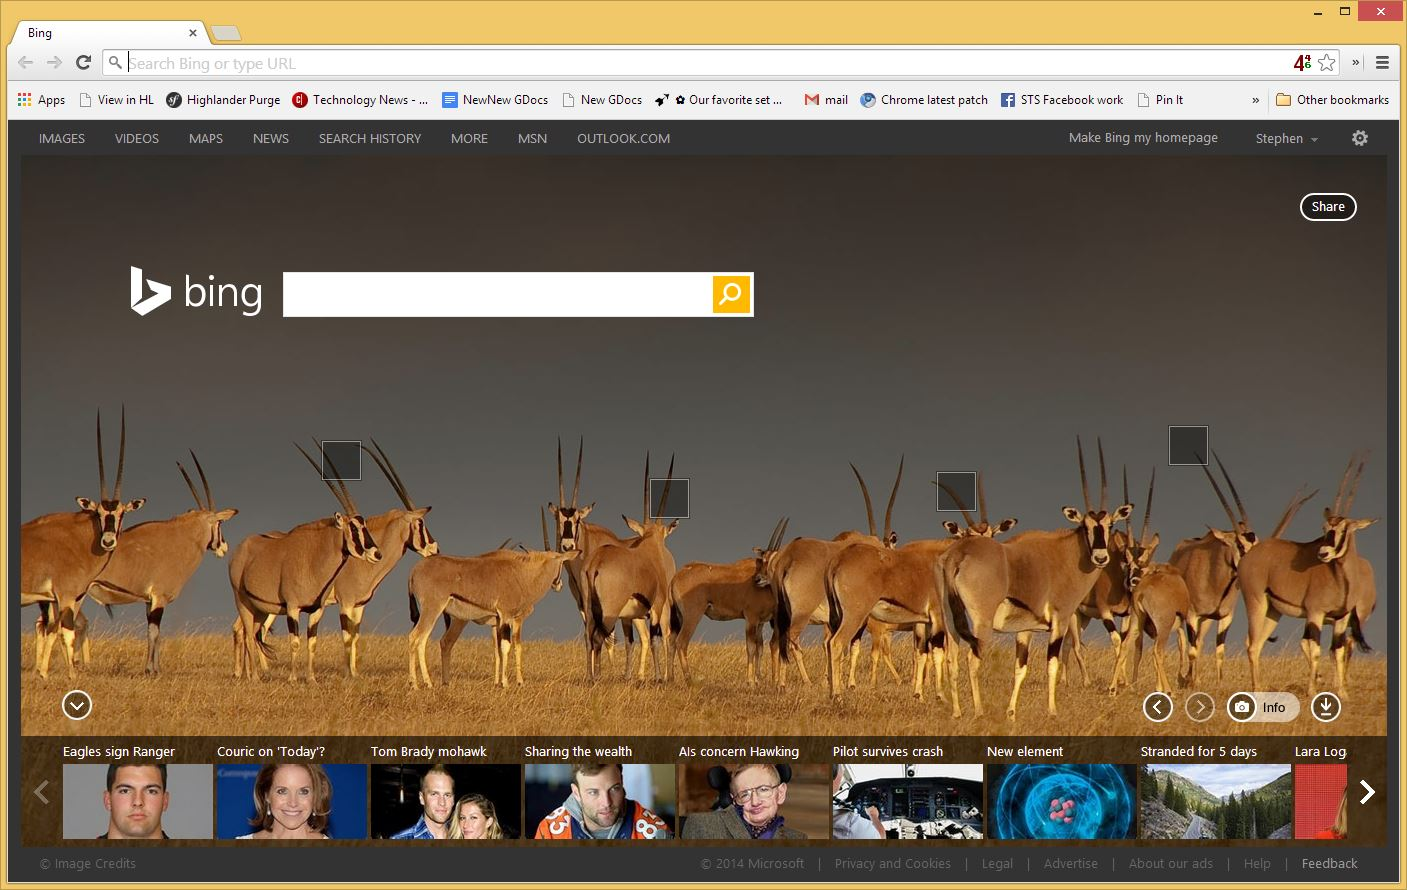 Chrome's new-tap page shows Bing's photo-centric search page for people who set it as default.